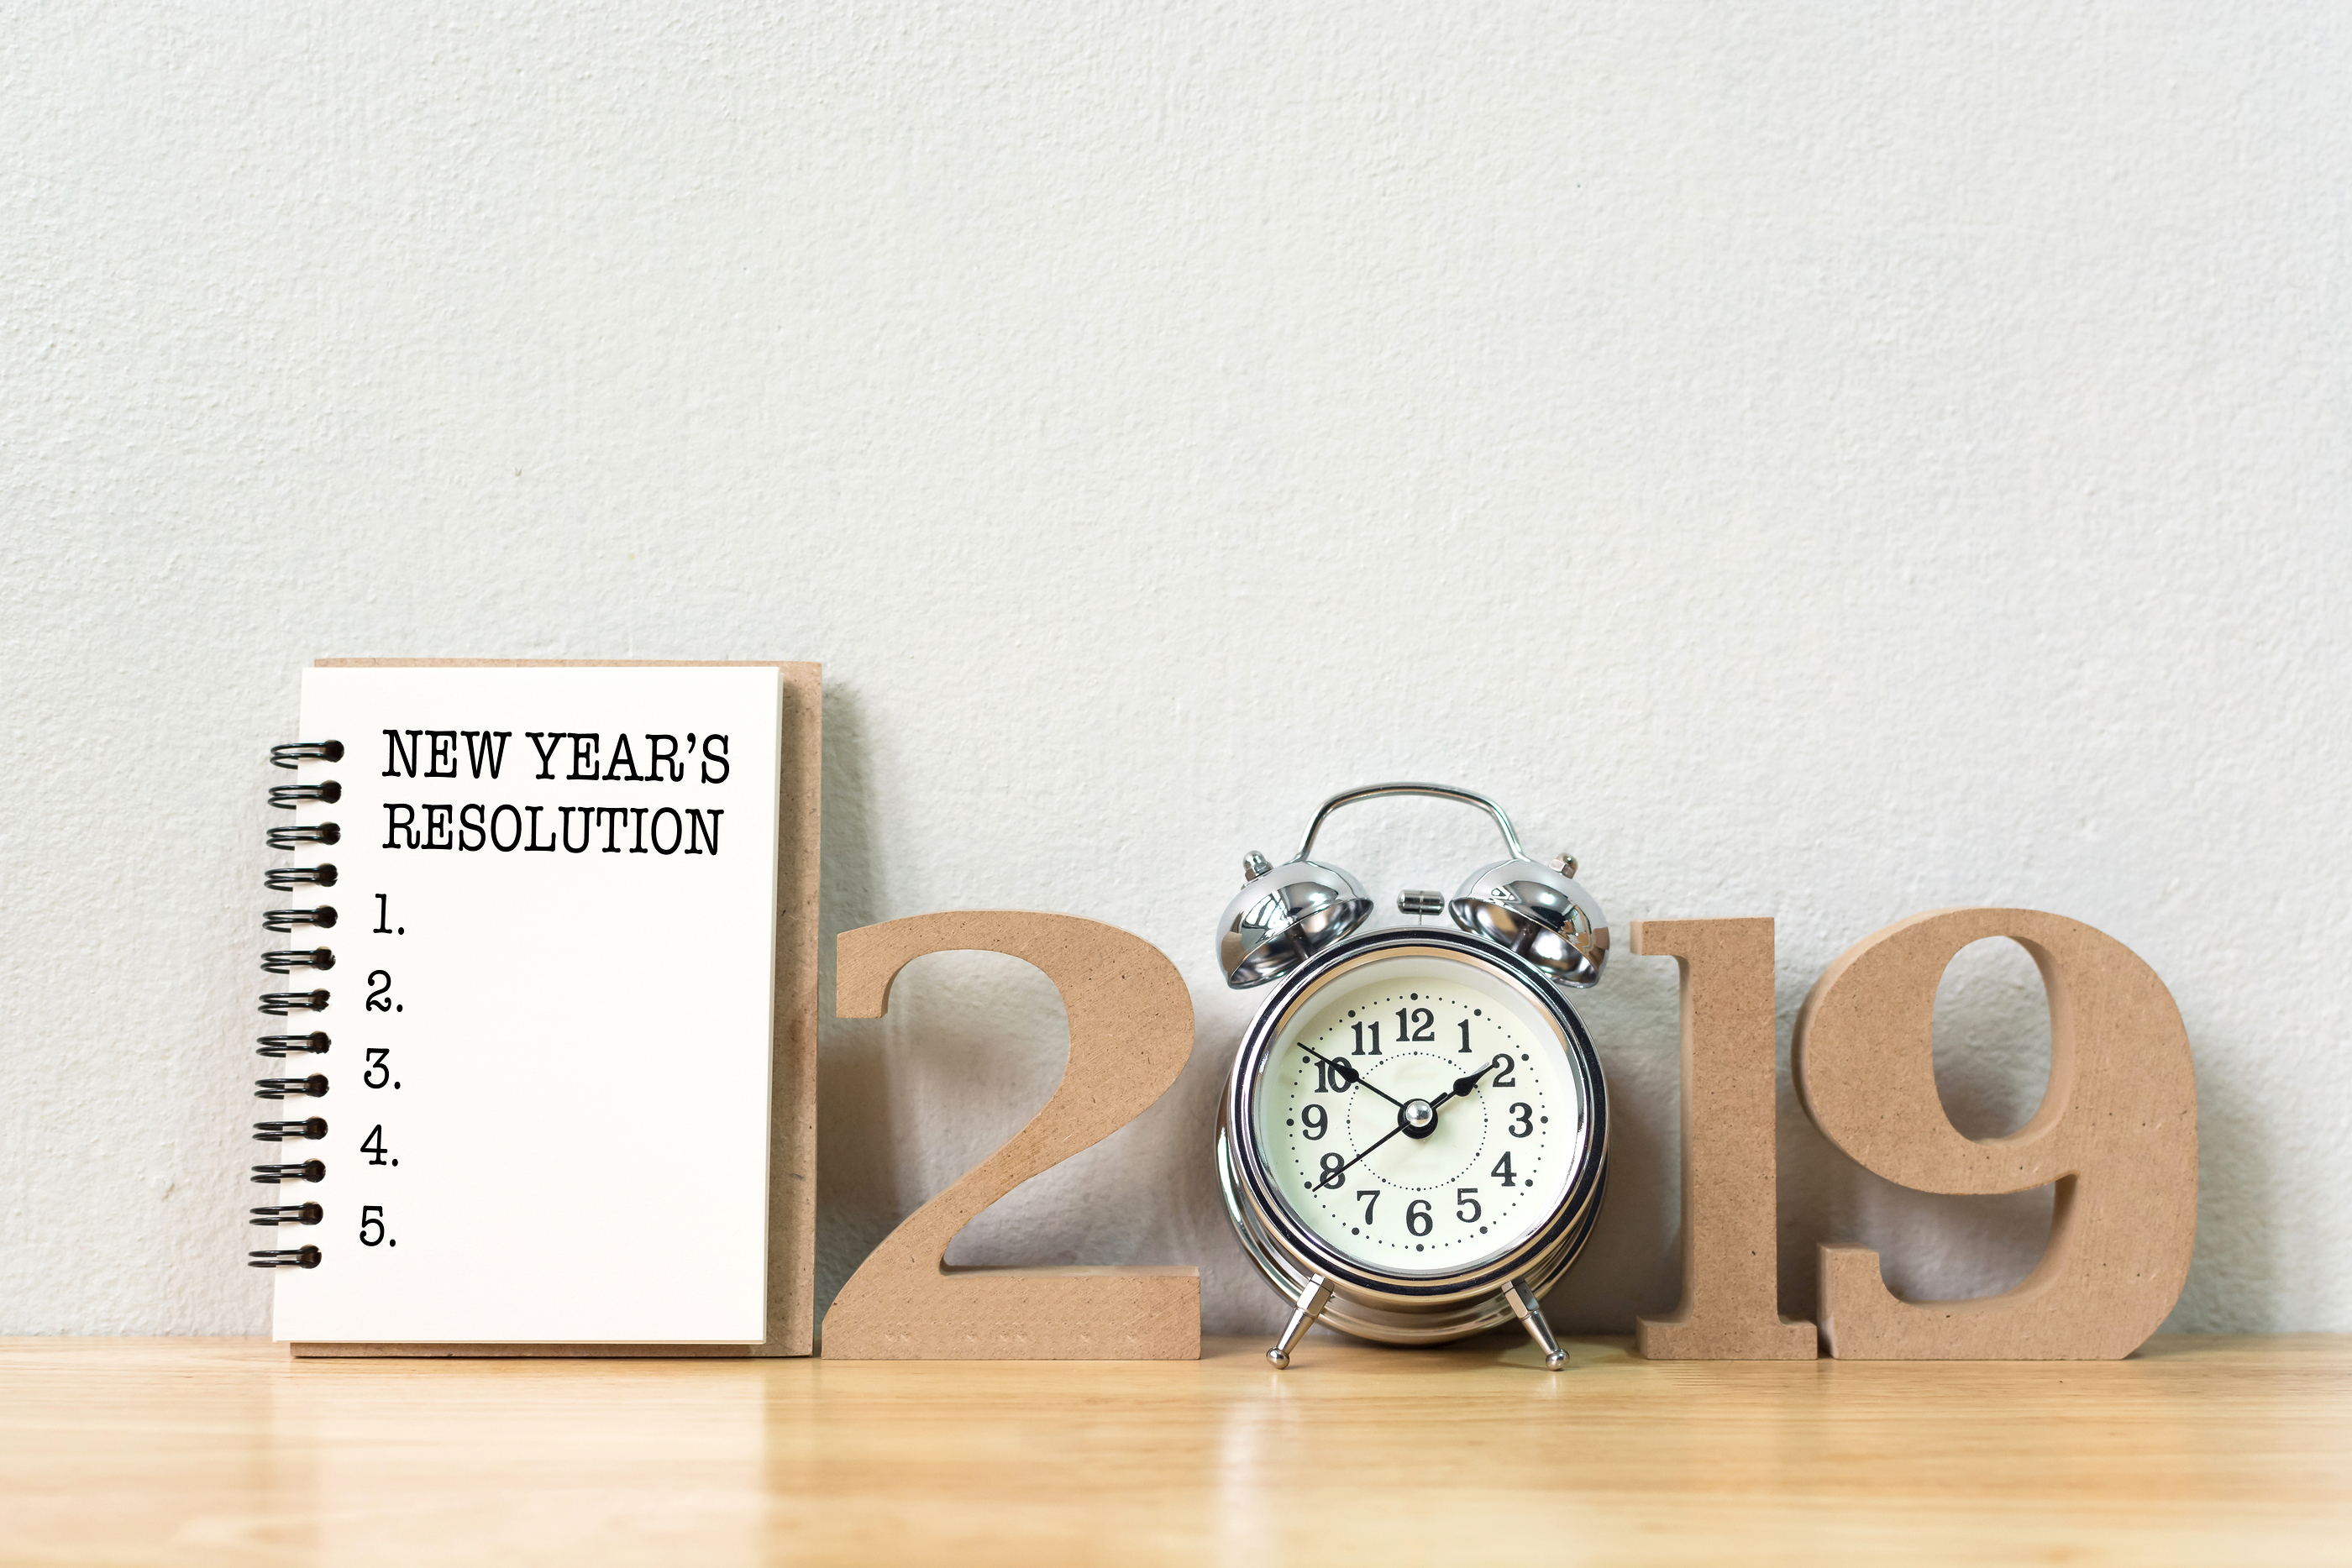 bigstock-New-Year-s-Resolution-On-A-Not-250768756